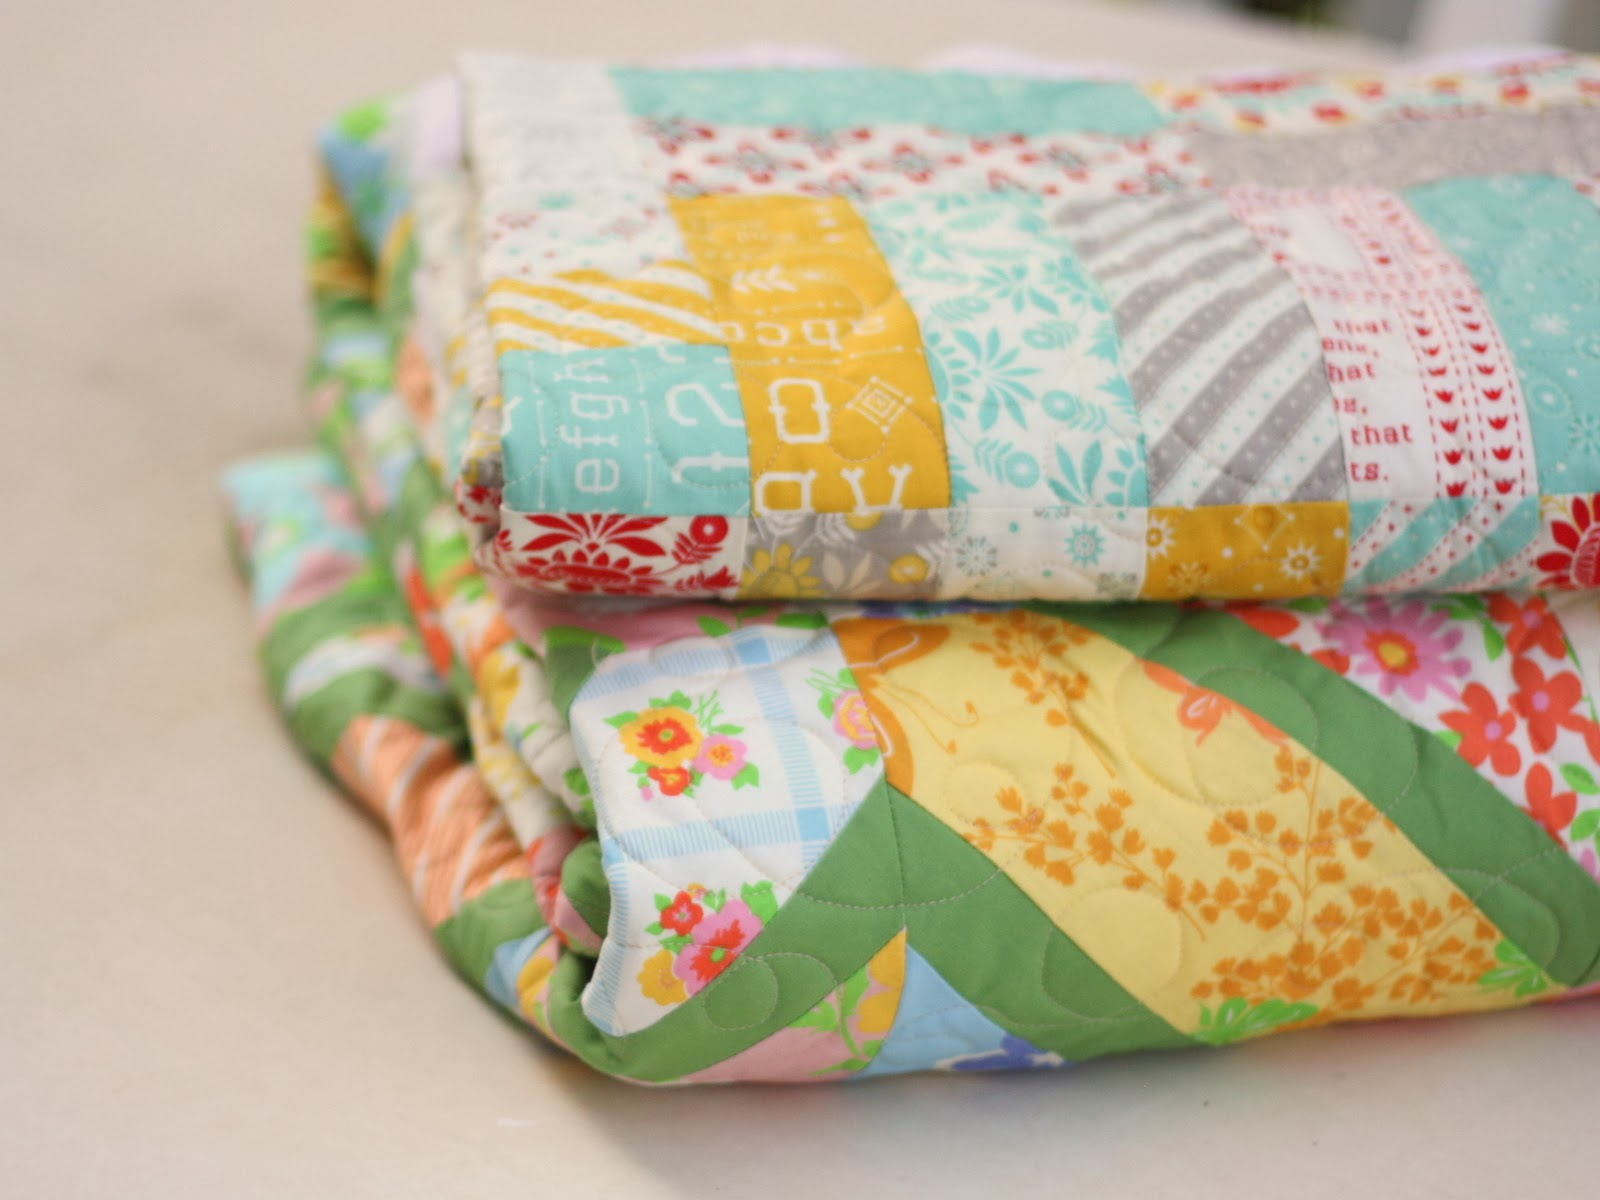 Basting and Machine Quilting Tutorials - Diary of a Quilter - a ... : machine quilting blogspot - Adamdwight.com